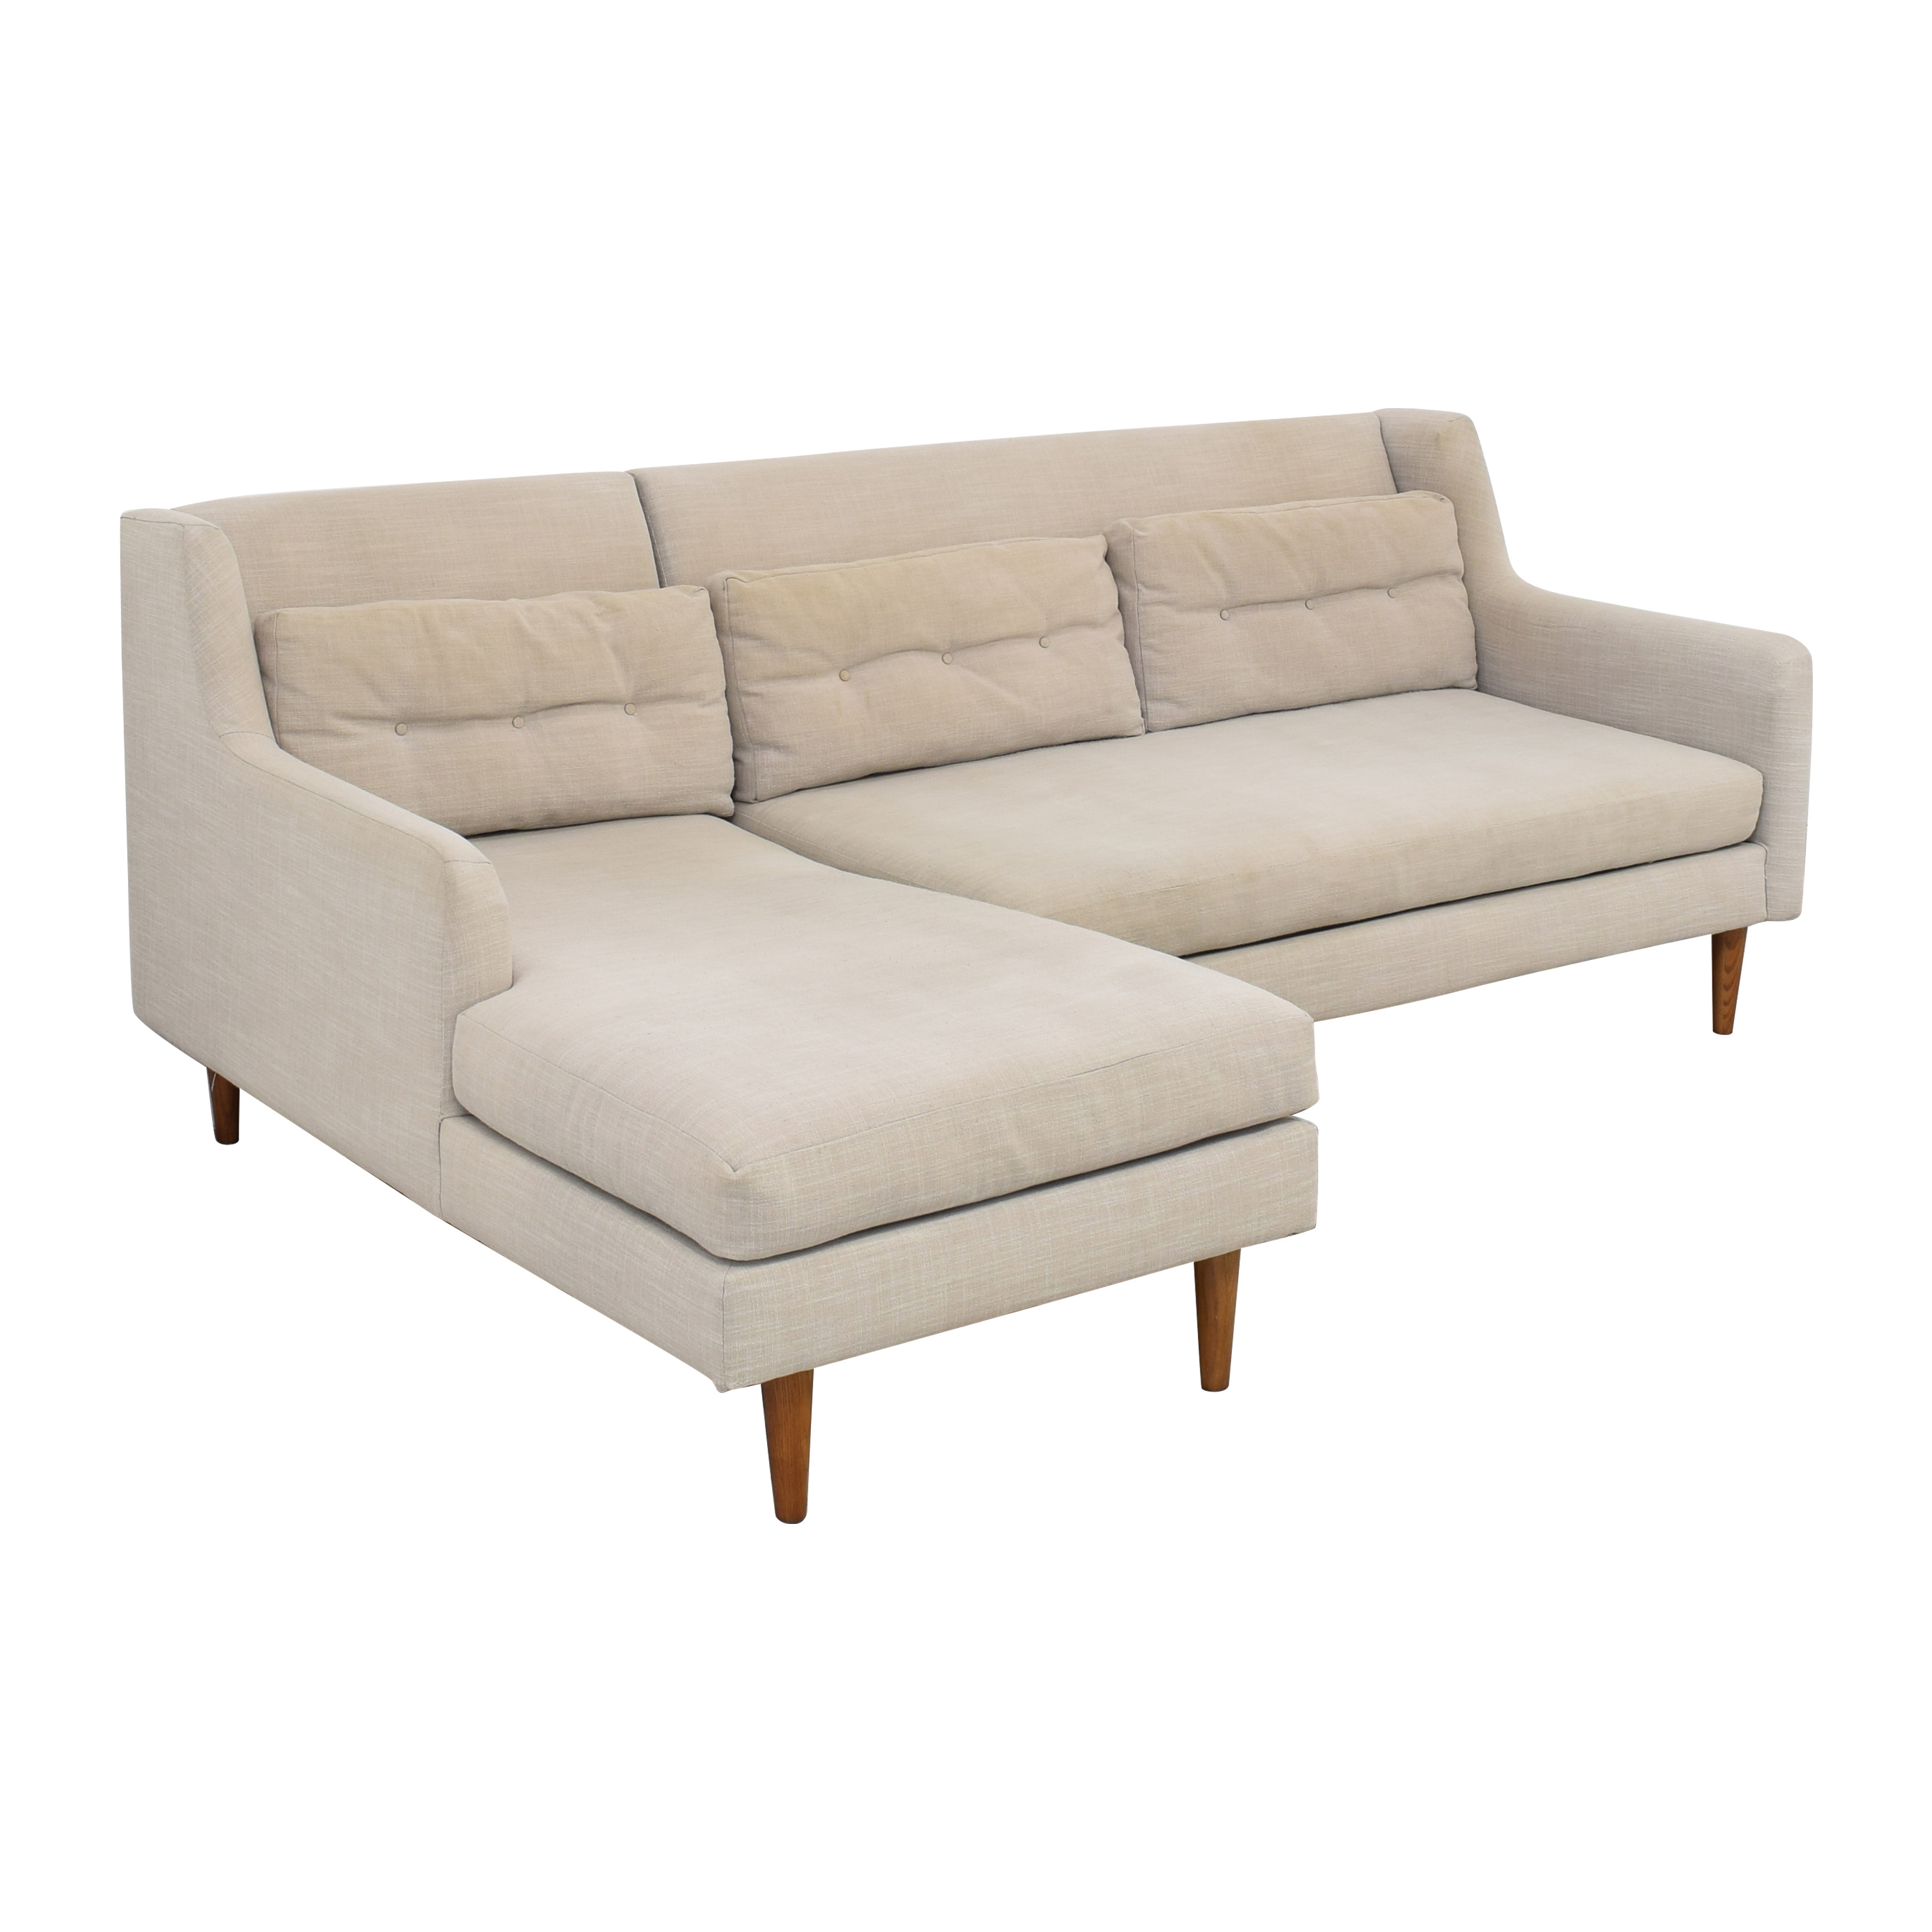 West Elm West Elm Crosby Mid-Century 2-Piece Chaise Sectional Sofas